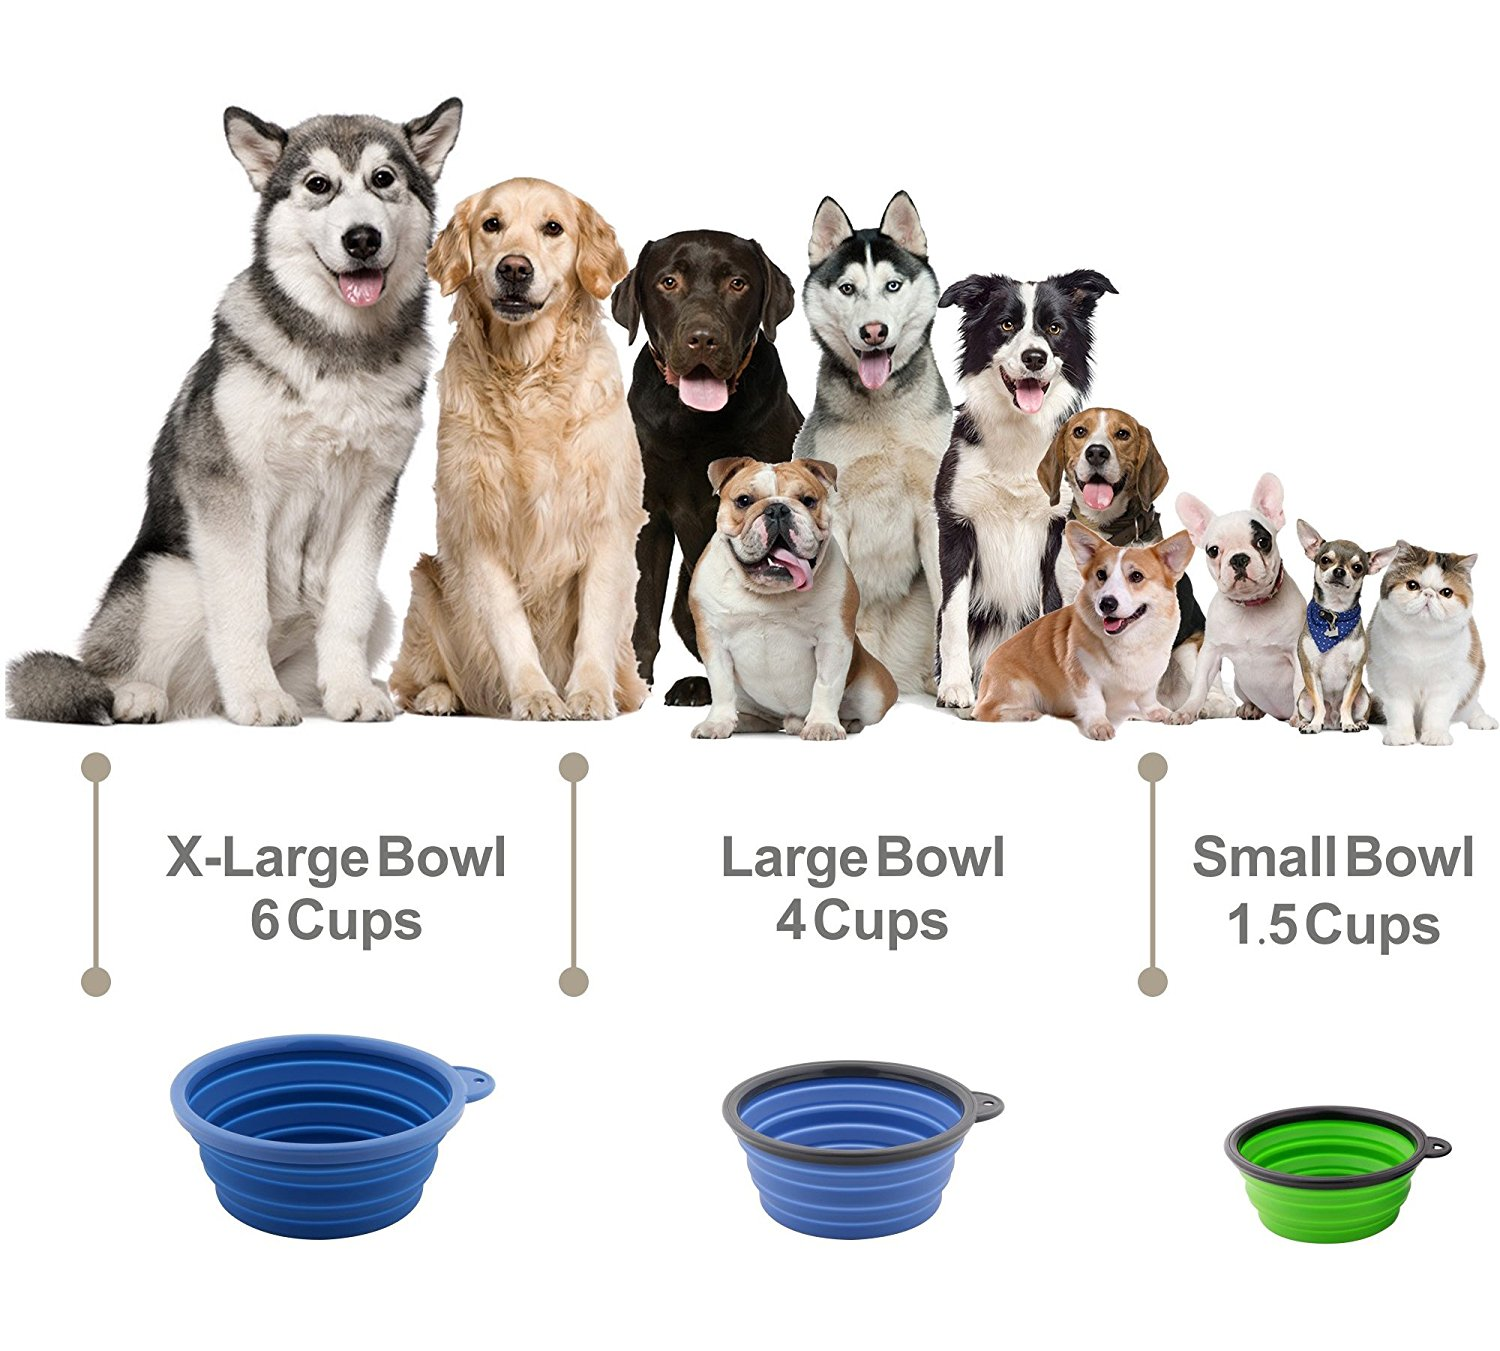 1000 ml Portabel Travel Food Grade Silicone BPA Free Air Diupgrade Lipat Dilipat Pet Kucing Makanan Anjing Feeding Bowl